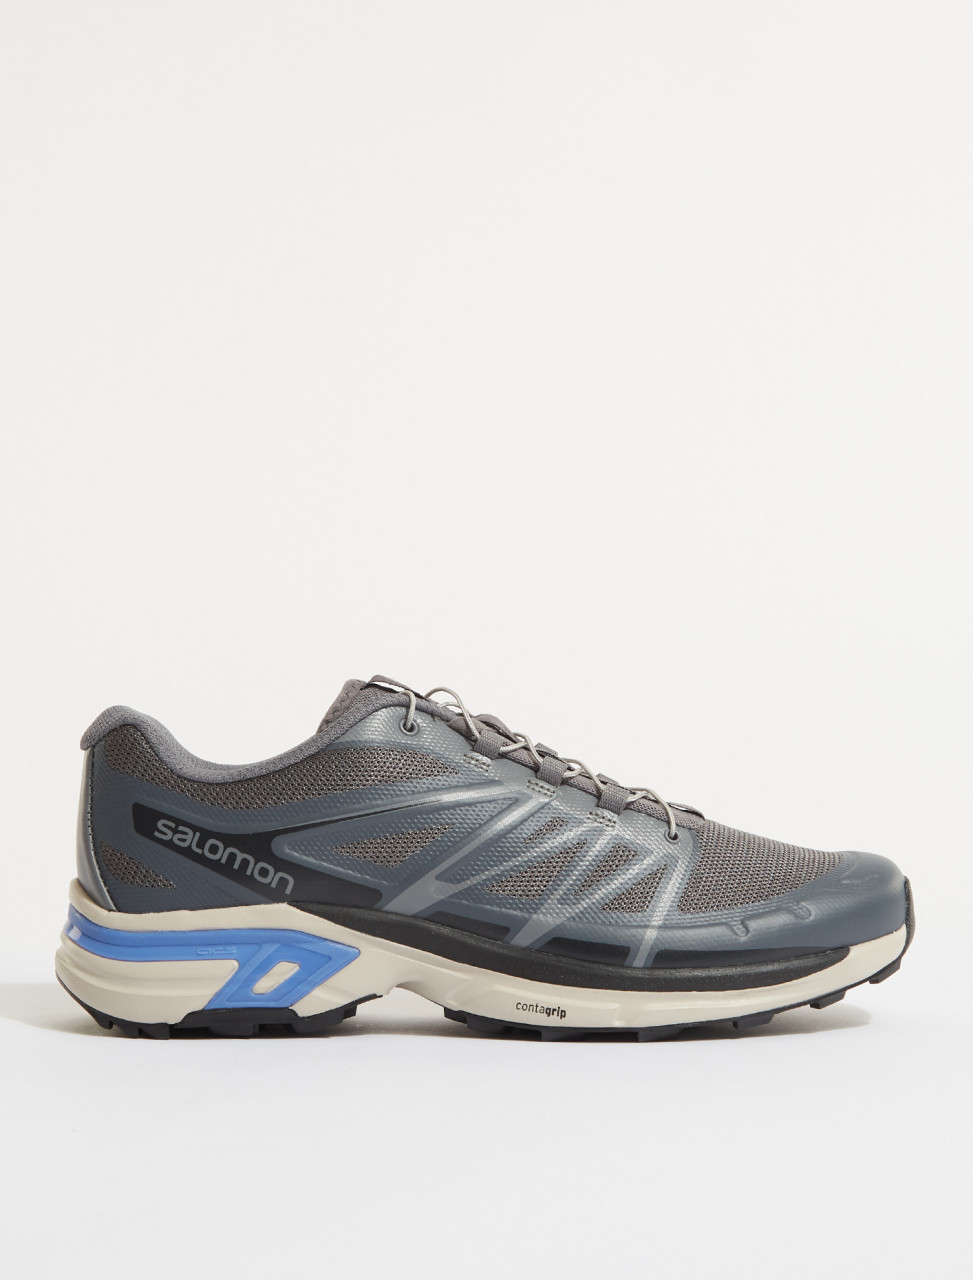 L41396100 SALOMON XT WING 2 ADVANCED QUIET SHADE SILVER CLOUD BAJA BLUE